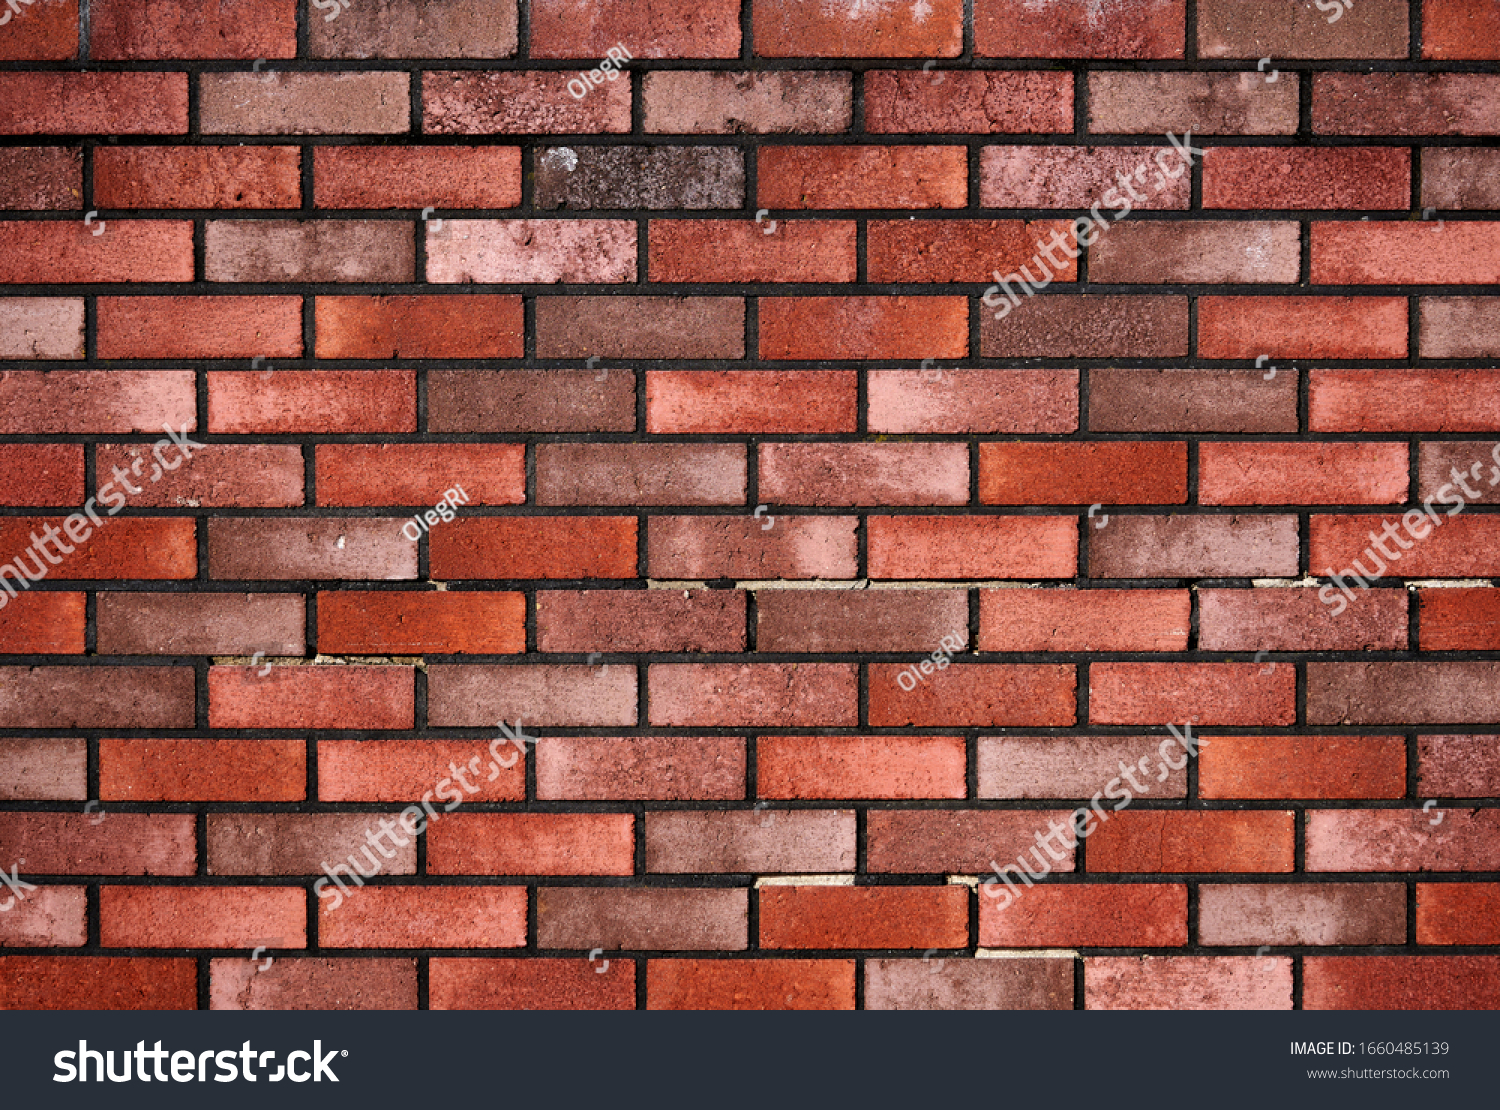 Brick wall with red brick, red brick background.